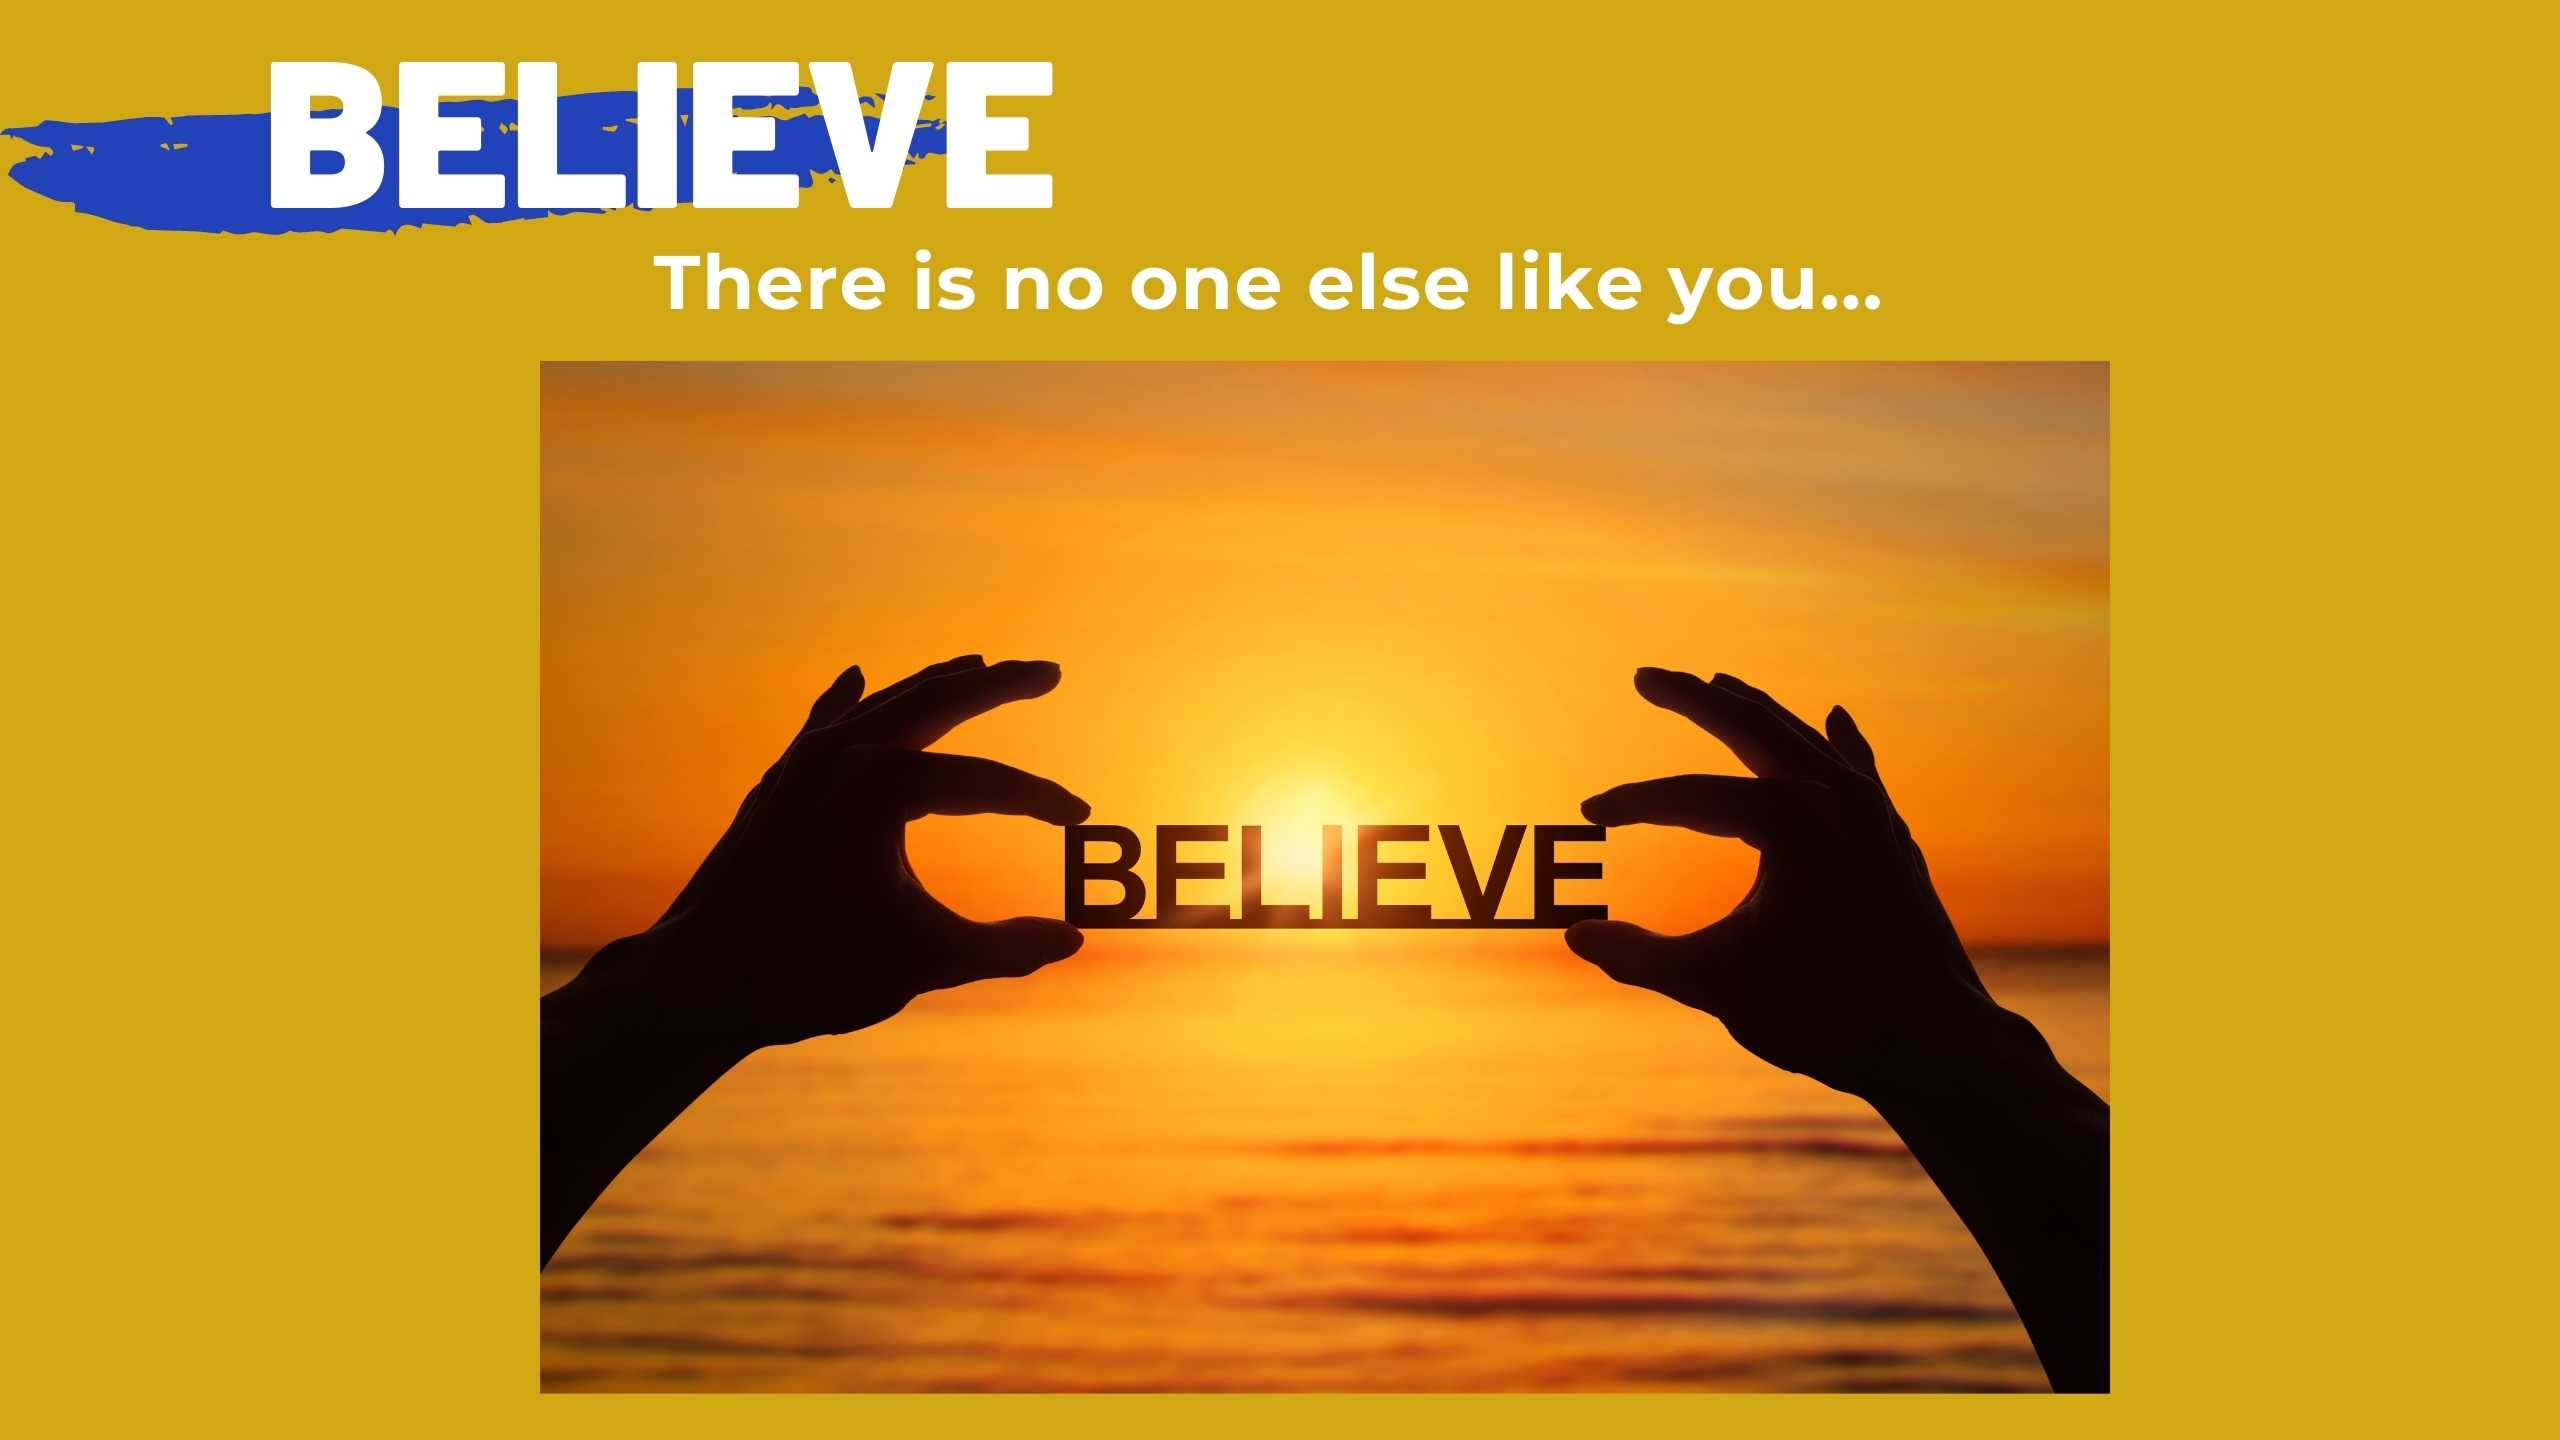 Believing in others